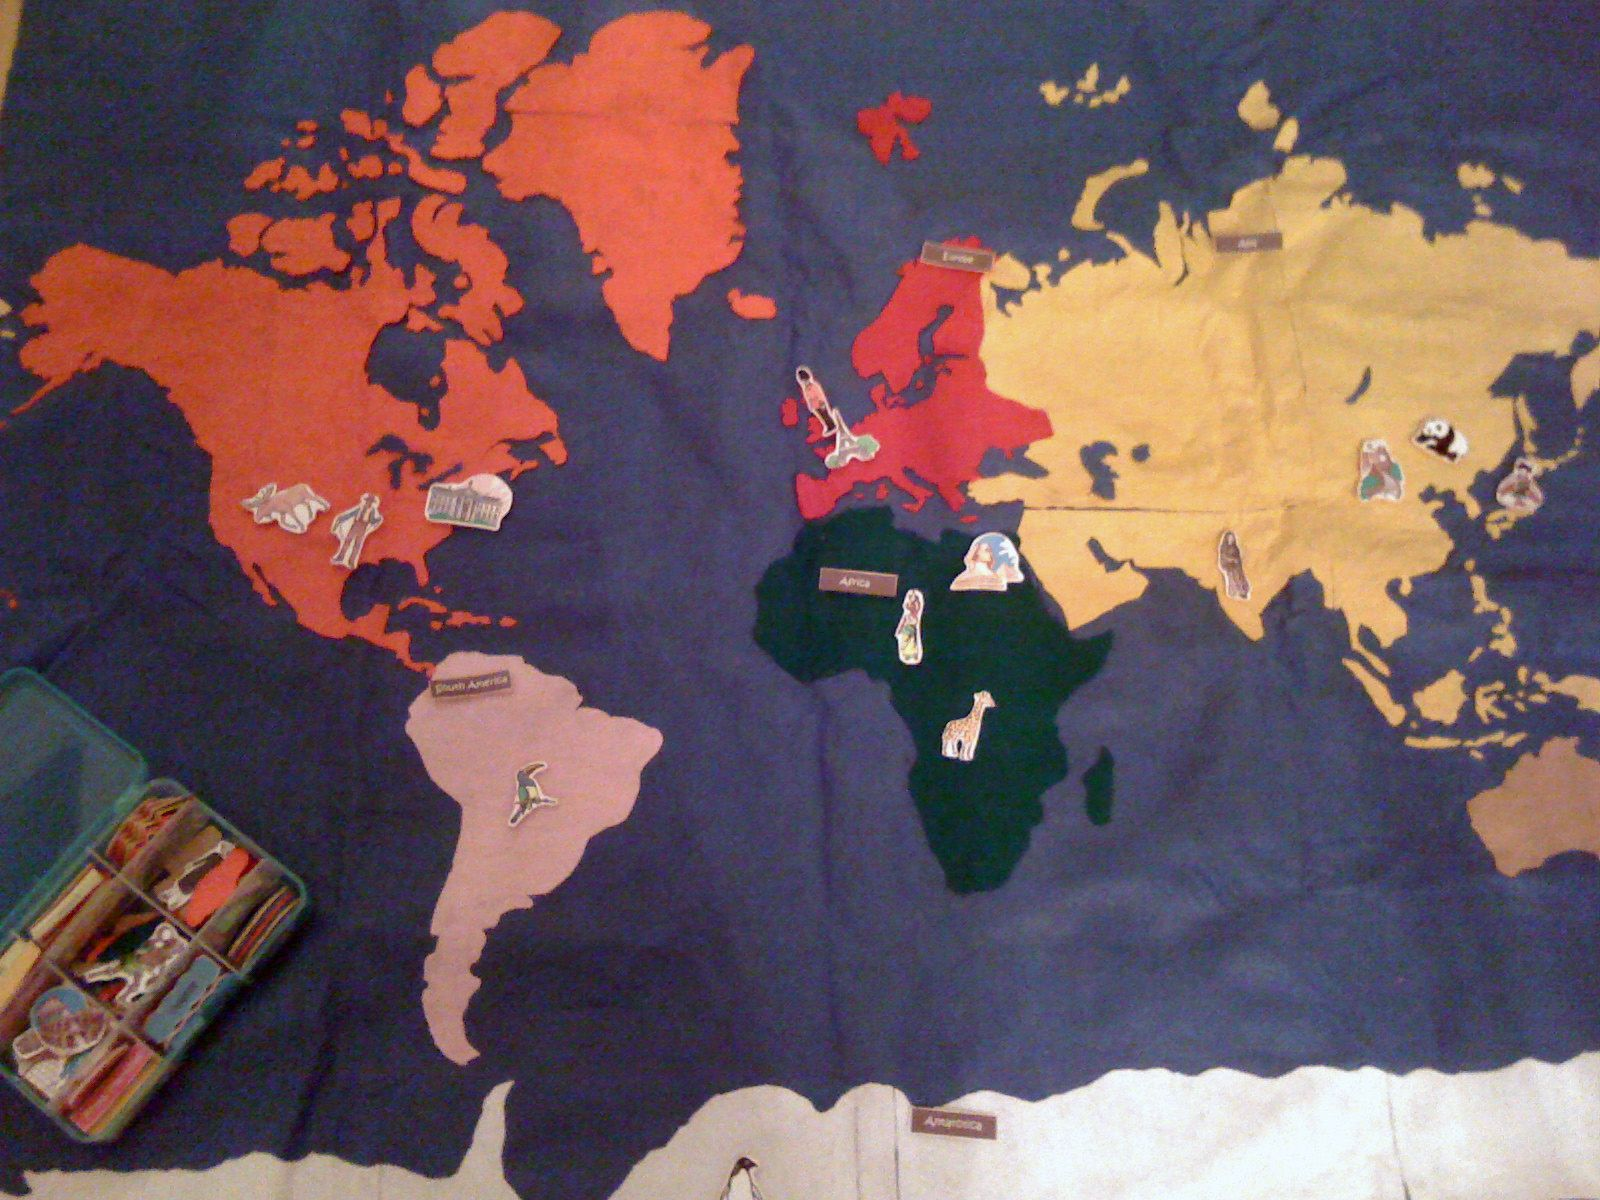 Color Your Own World Map.Make Your Own Felt World Map Instructions And Files Included